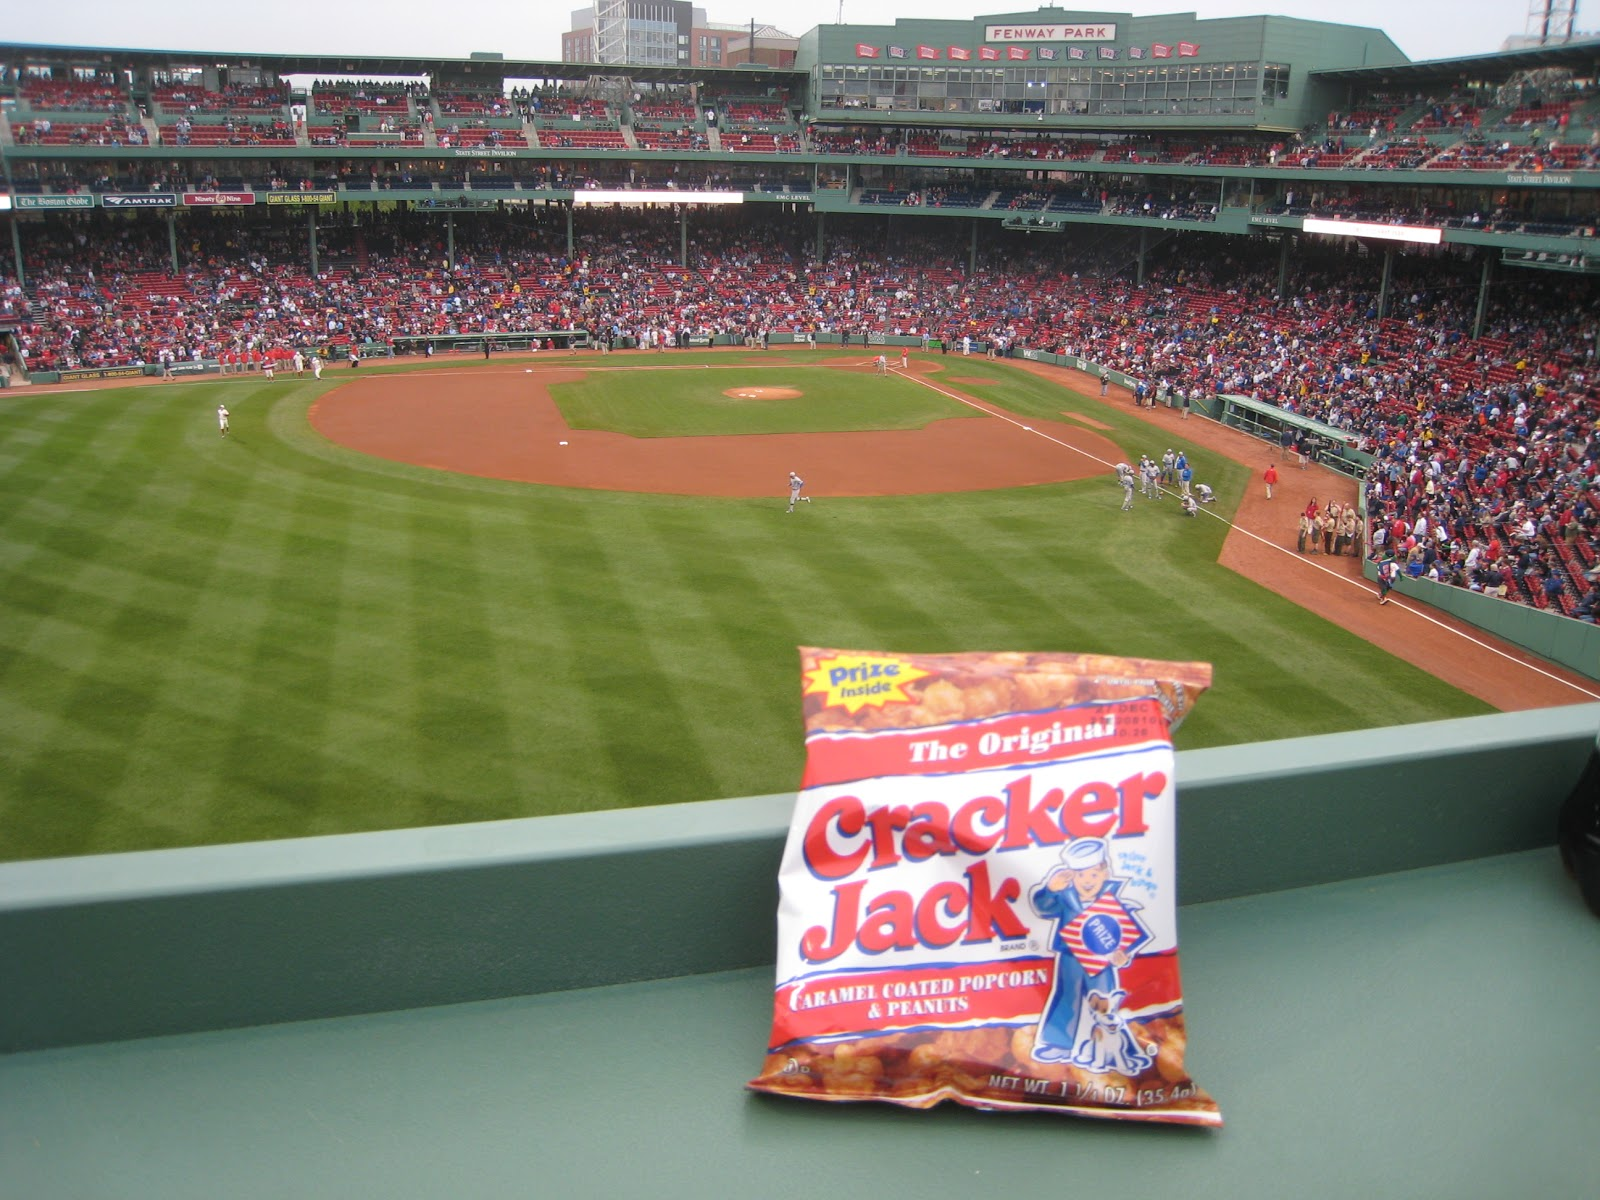 sitting on the green monster at fenway park adventures in rhode